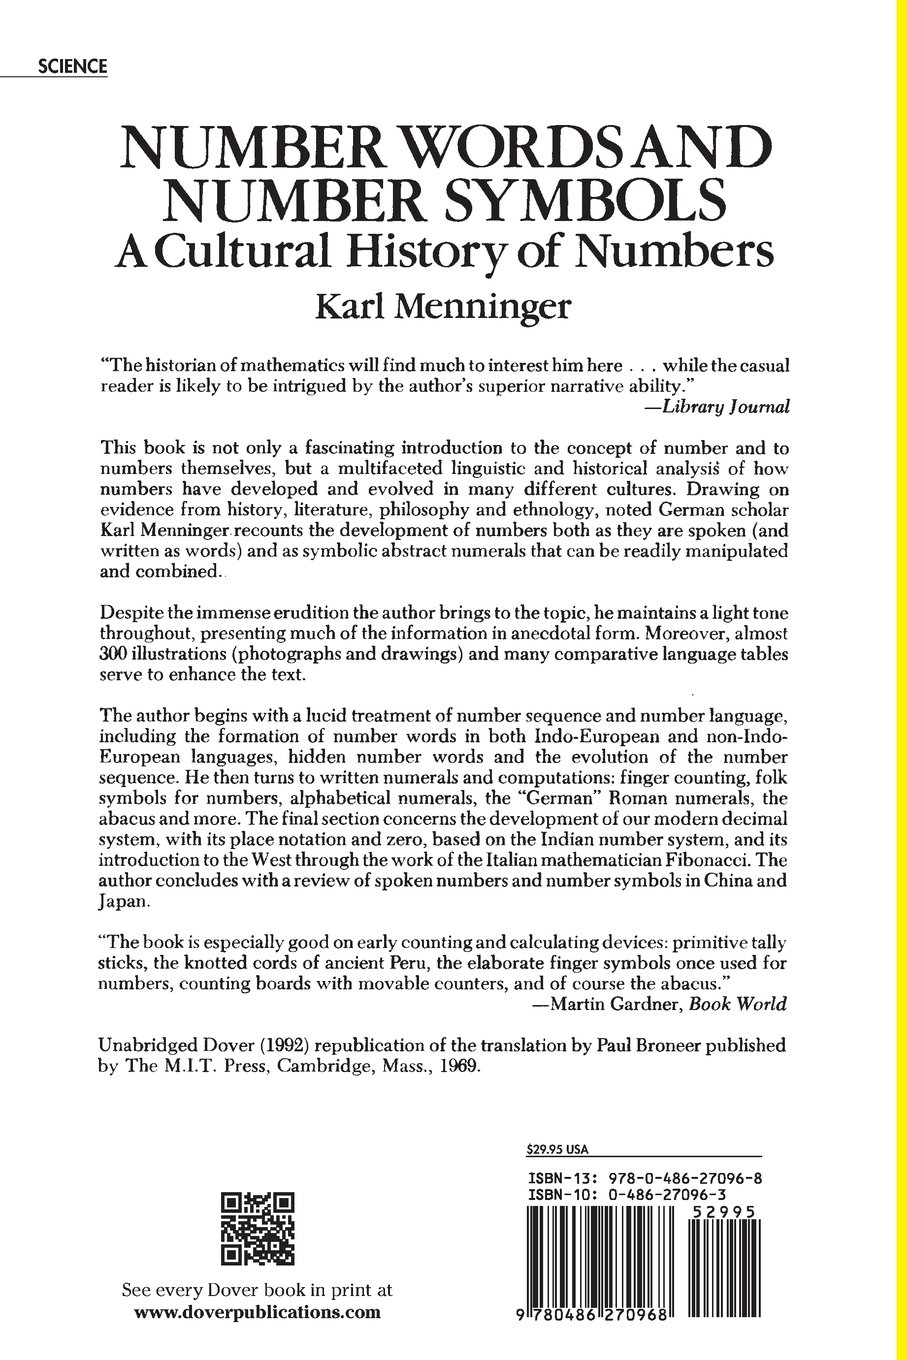 Number words and number symbols a cultural history of numbers number words and number symbols a cultural history of numbers karl menninger 9780486270968 amazon books biocorpaavc